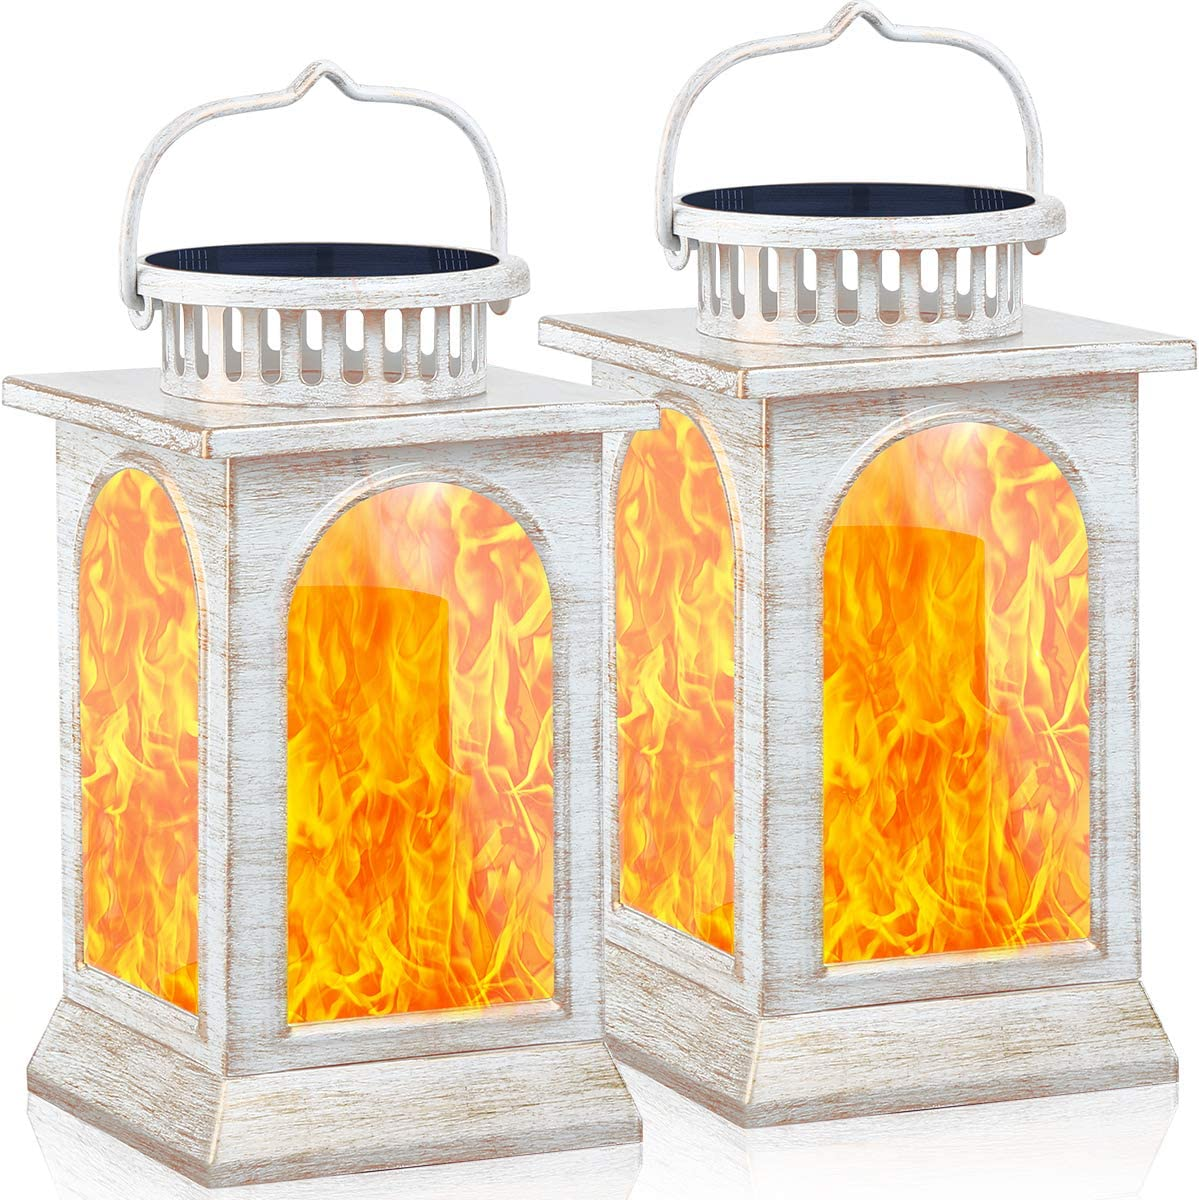 TomCare Solar Lights Flickering Flame Metal Solar Lantern Outdoor Hanging Decorative Lanterns Lighting Heavy Duty Solar Powered Waterproof Umbrella Lights for Patio Garden Deck Yard, 2 Pack (White)